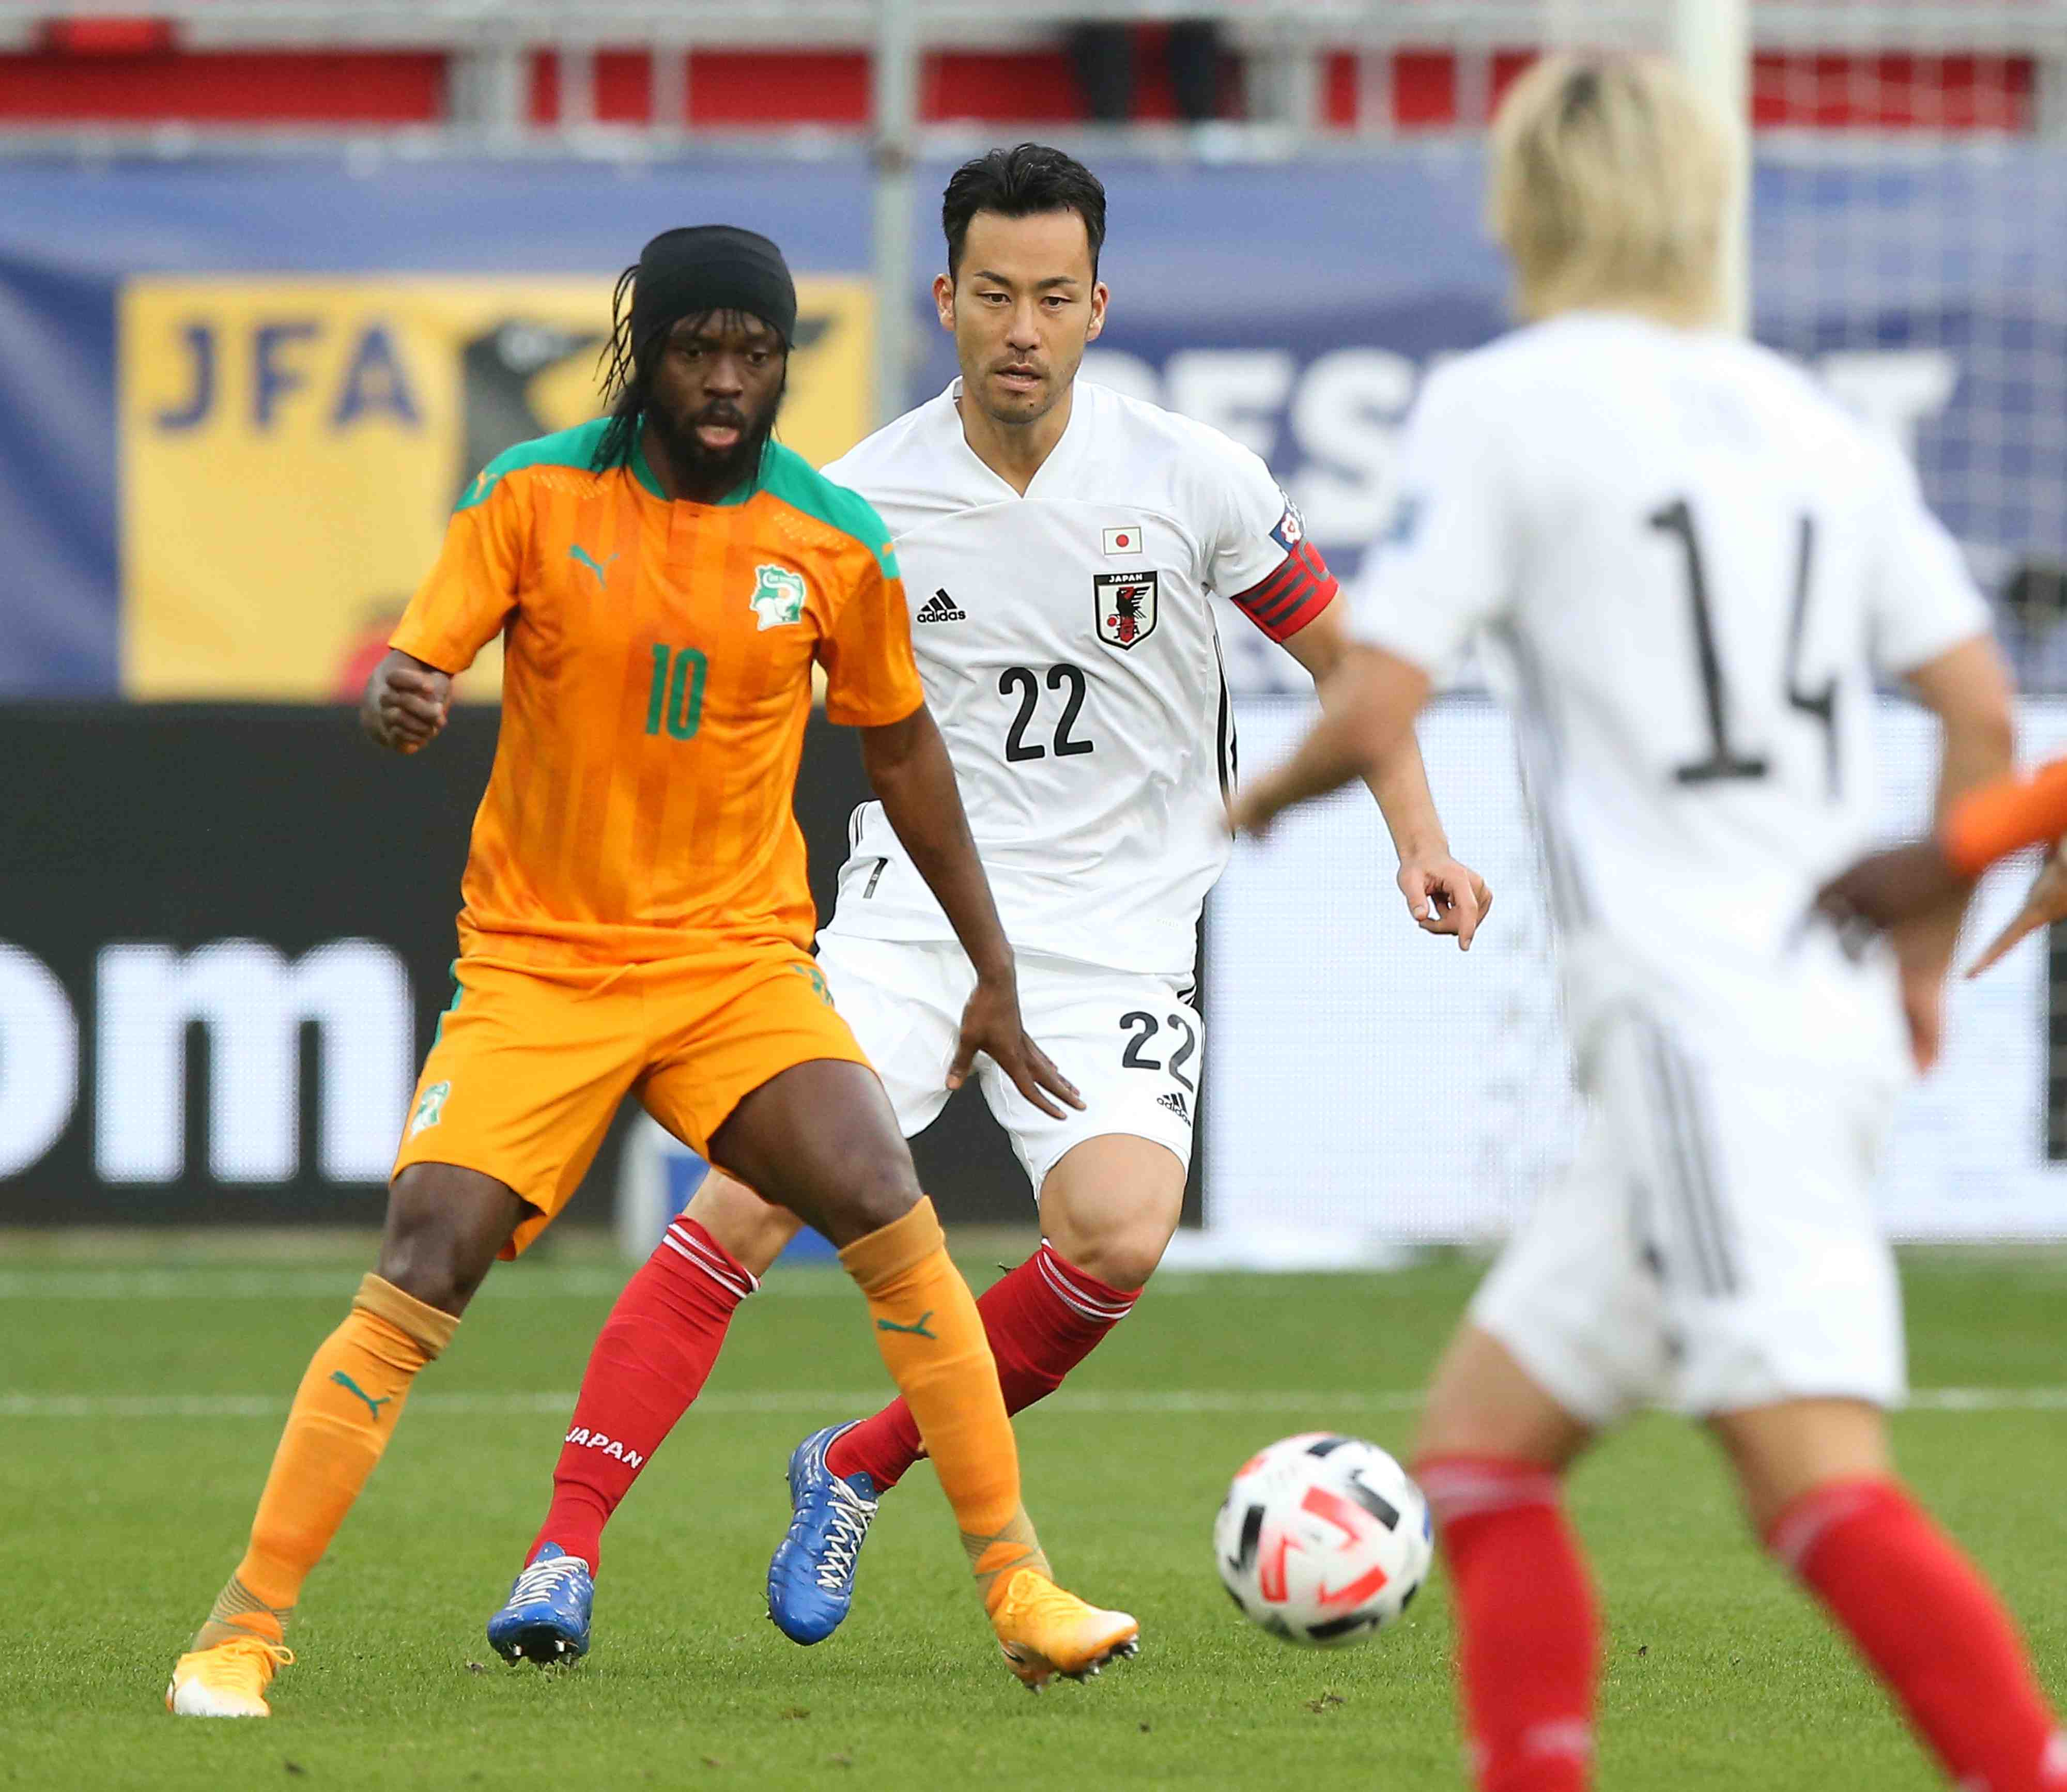 Japan men's soccer team's two friendlies against Cameroon and Ivory Coast